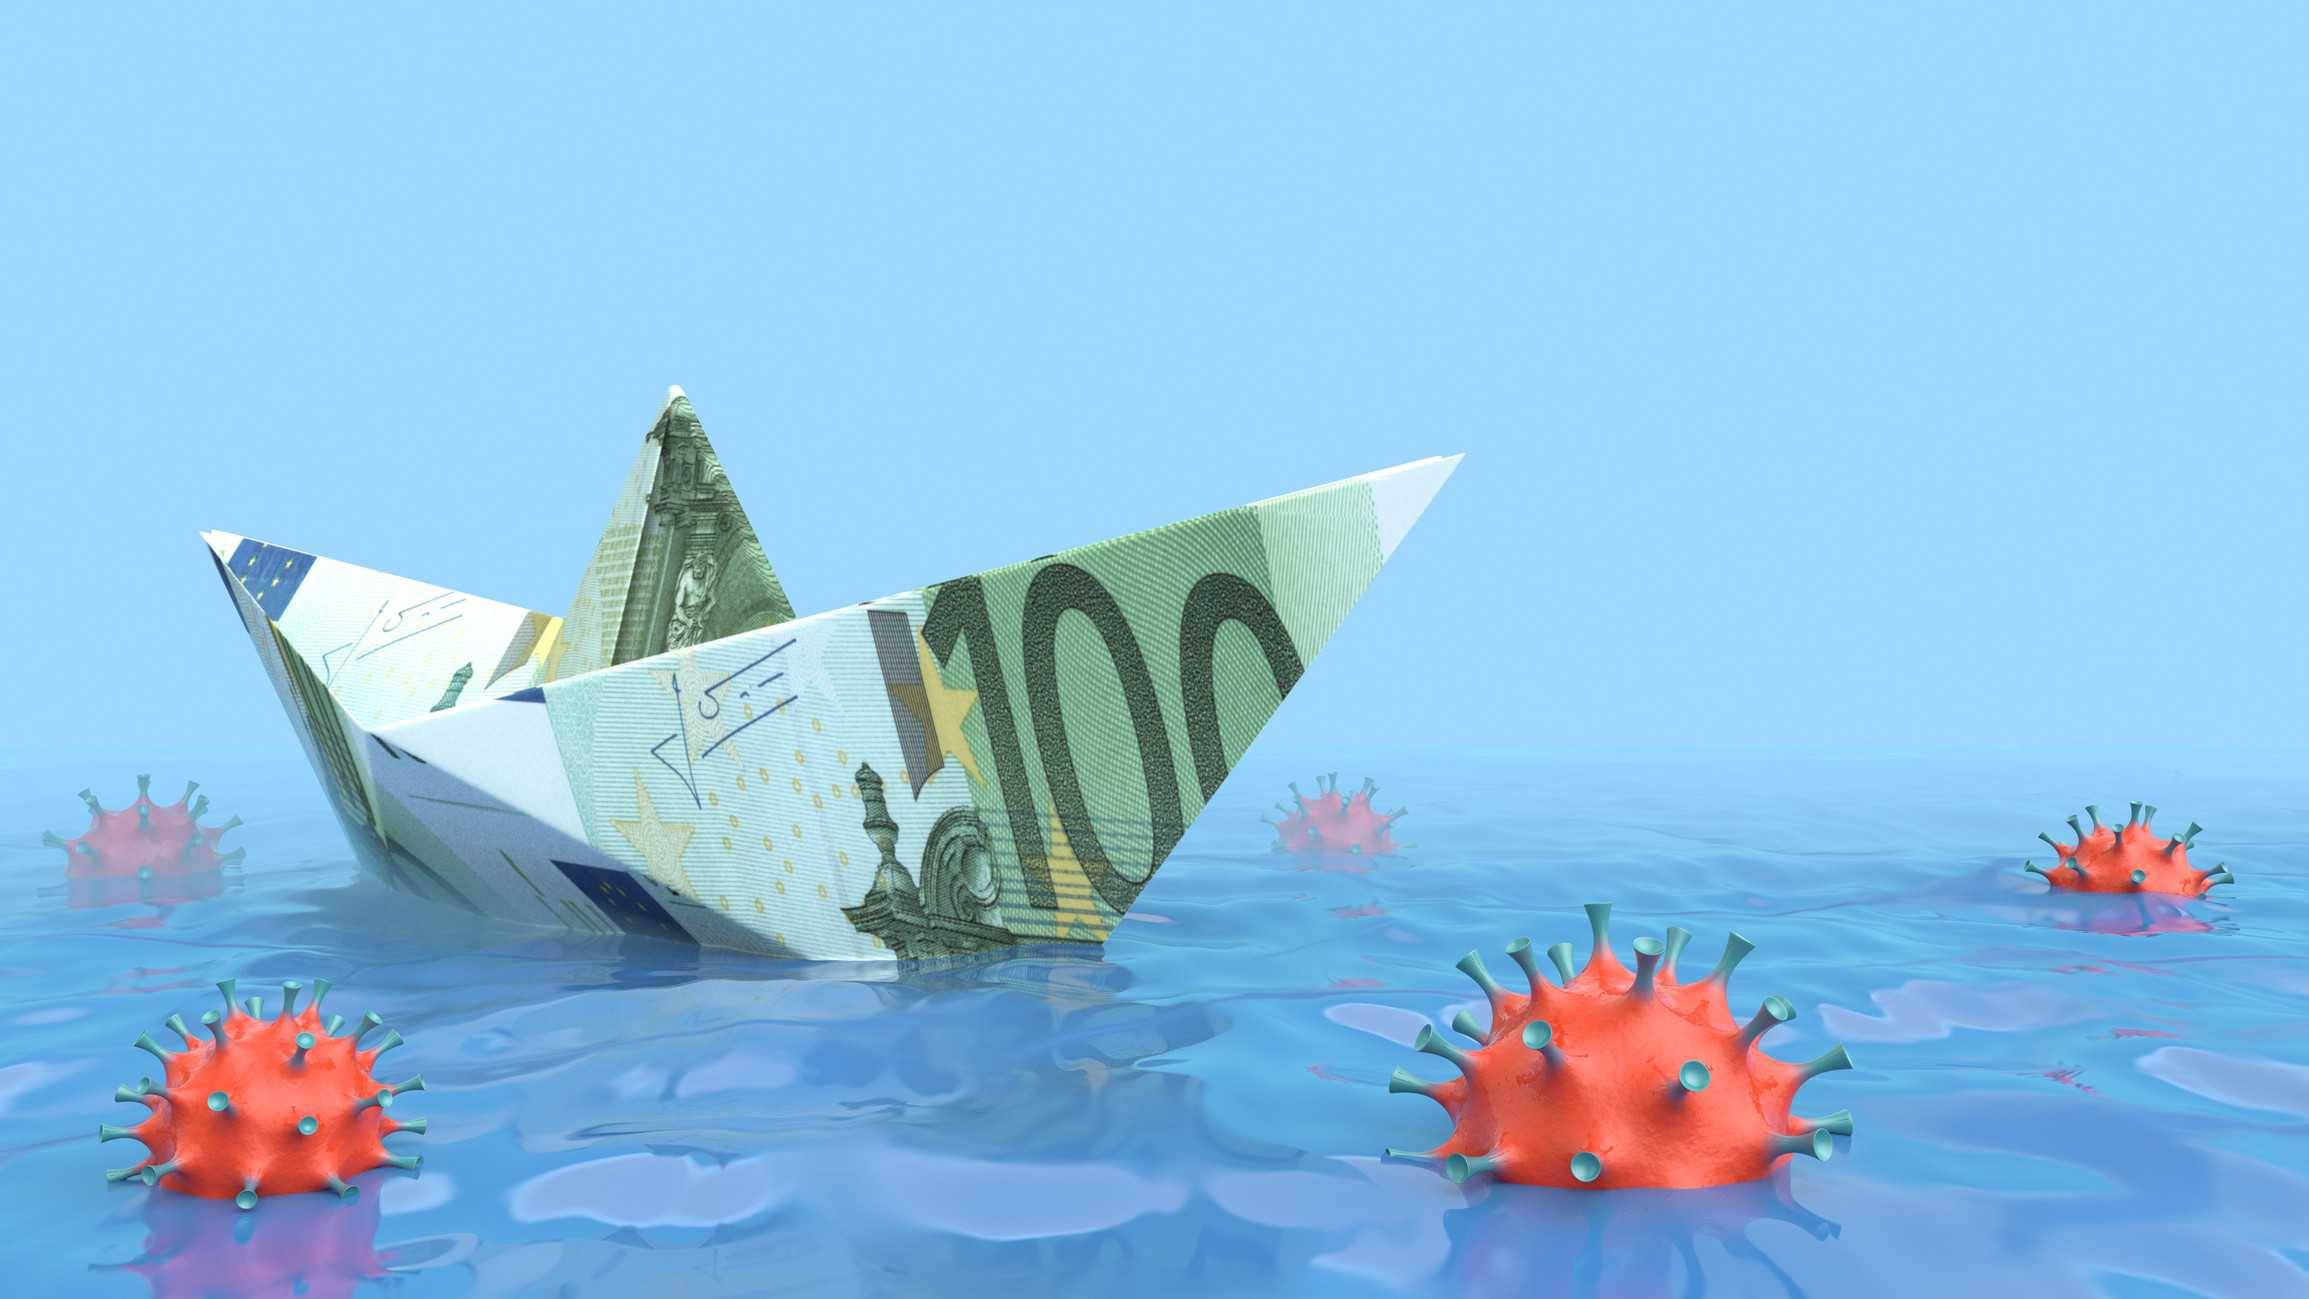 ASX shares and ETF representing by paper boat made from one hundred dollar note floating on sea containing covid bugs